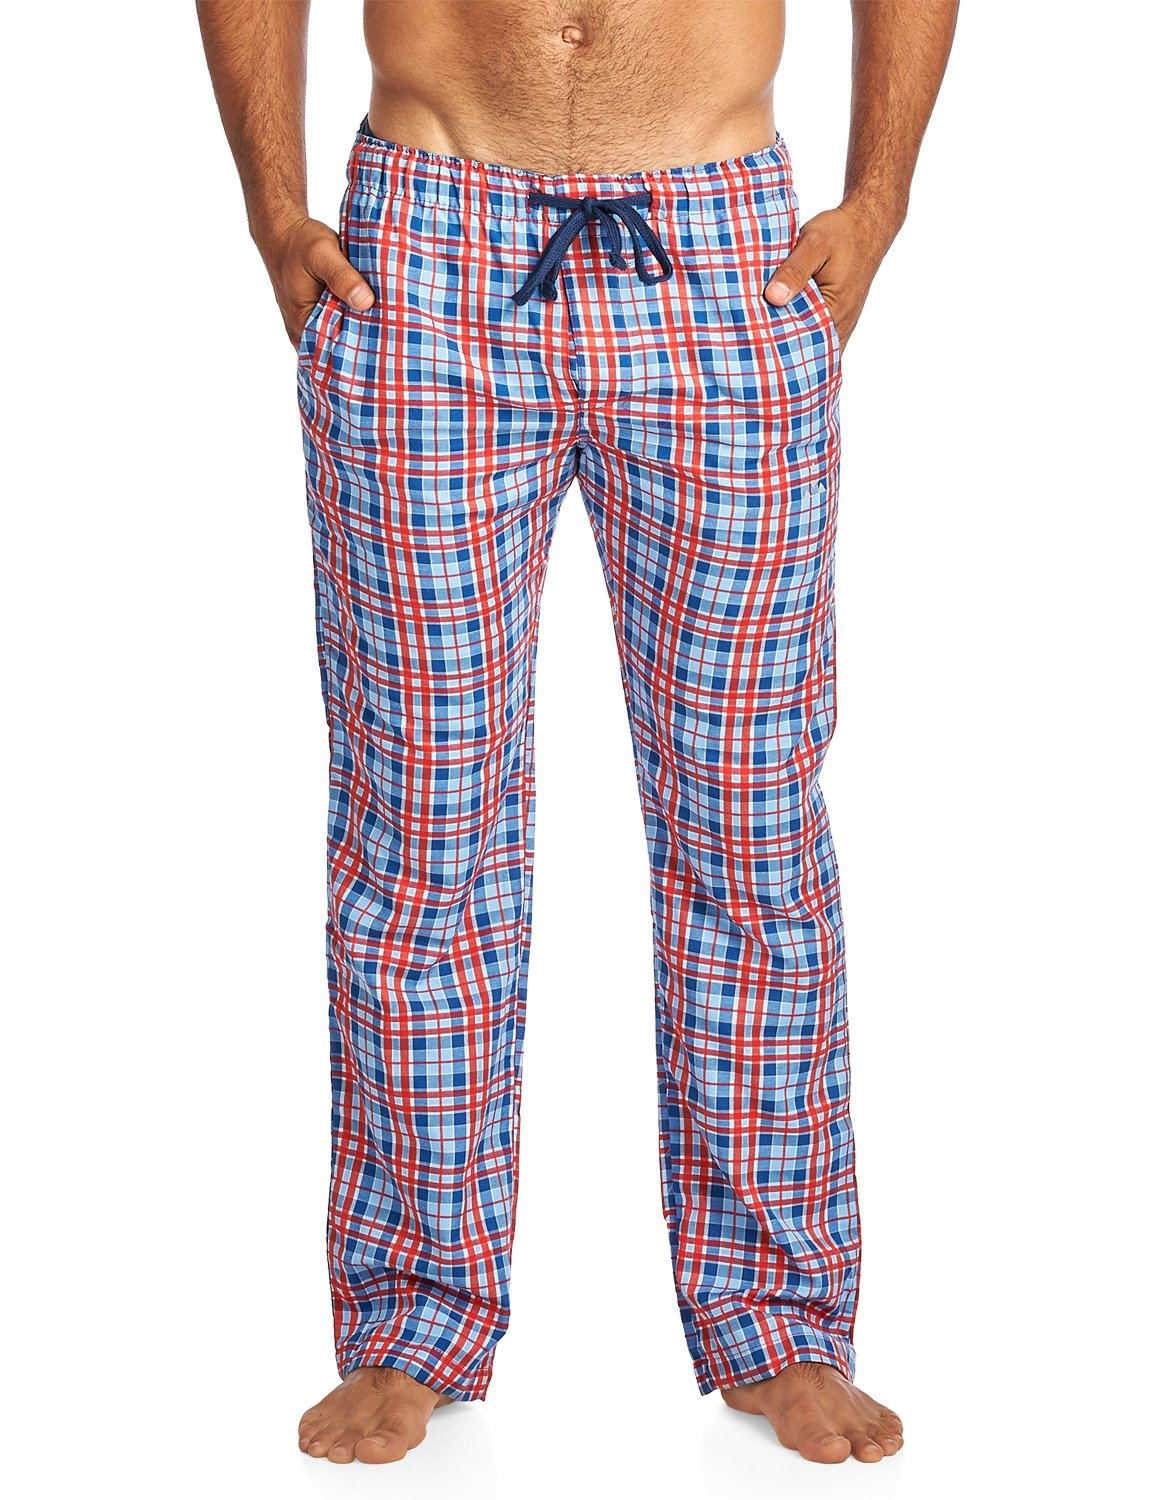 Balanced Tech Men's Woven Sleep Lounge Pajama Pants - Blue/Red - X-Large